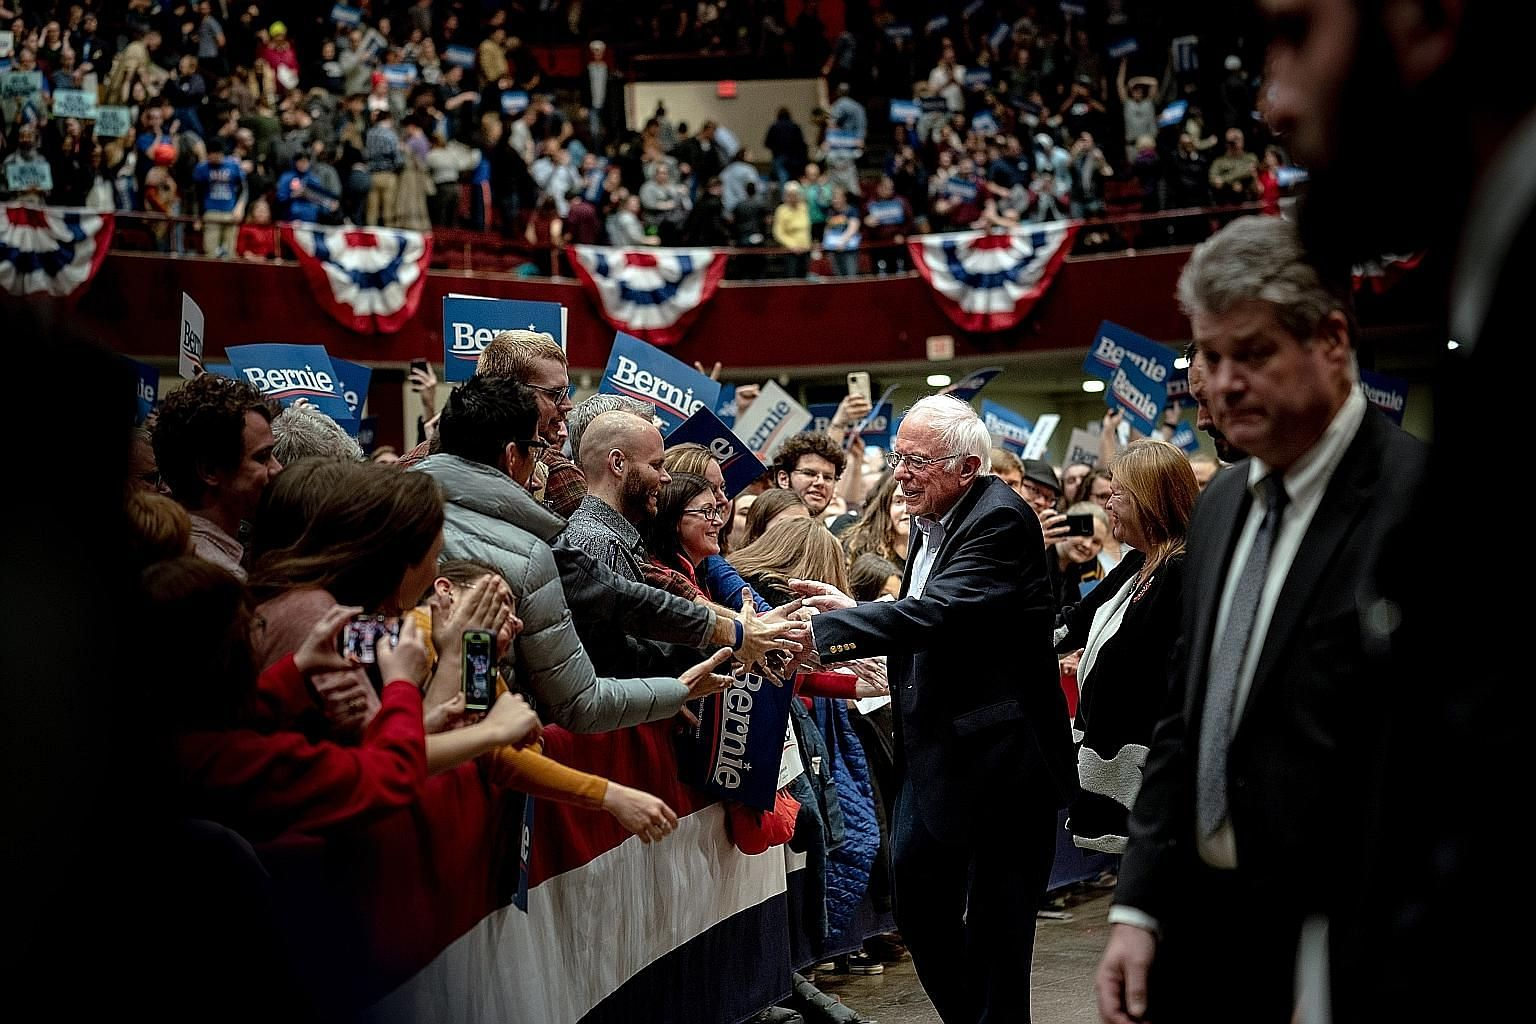 Senator Bernie Sanders greeting supporters at a campaign rally in St Paul, Minnesota, last month. He suspended his presidential campaign this week. PHOTO: NYTIMES